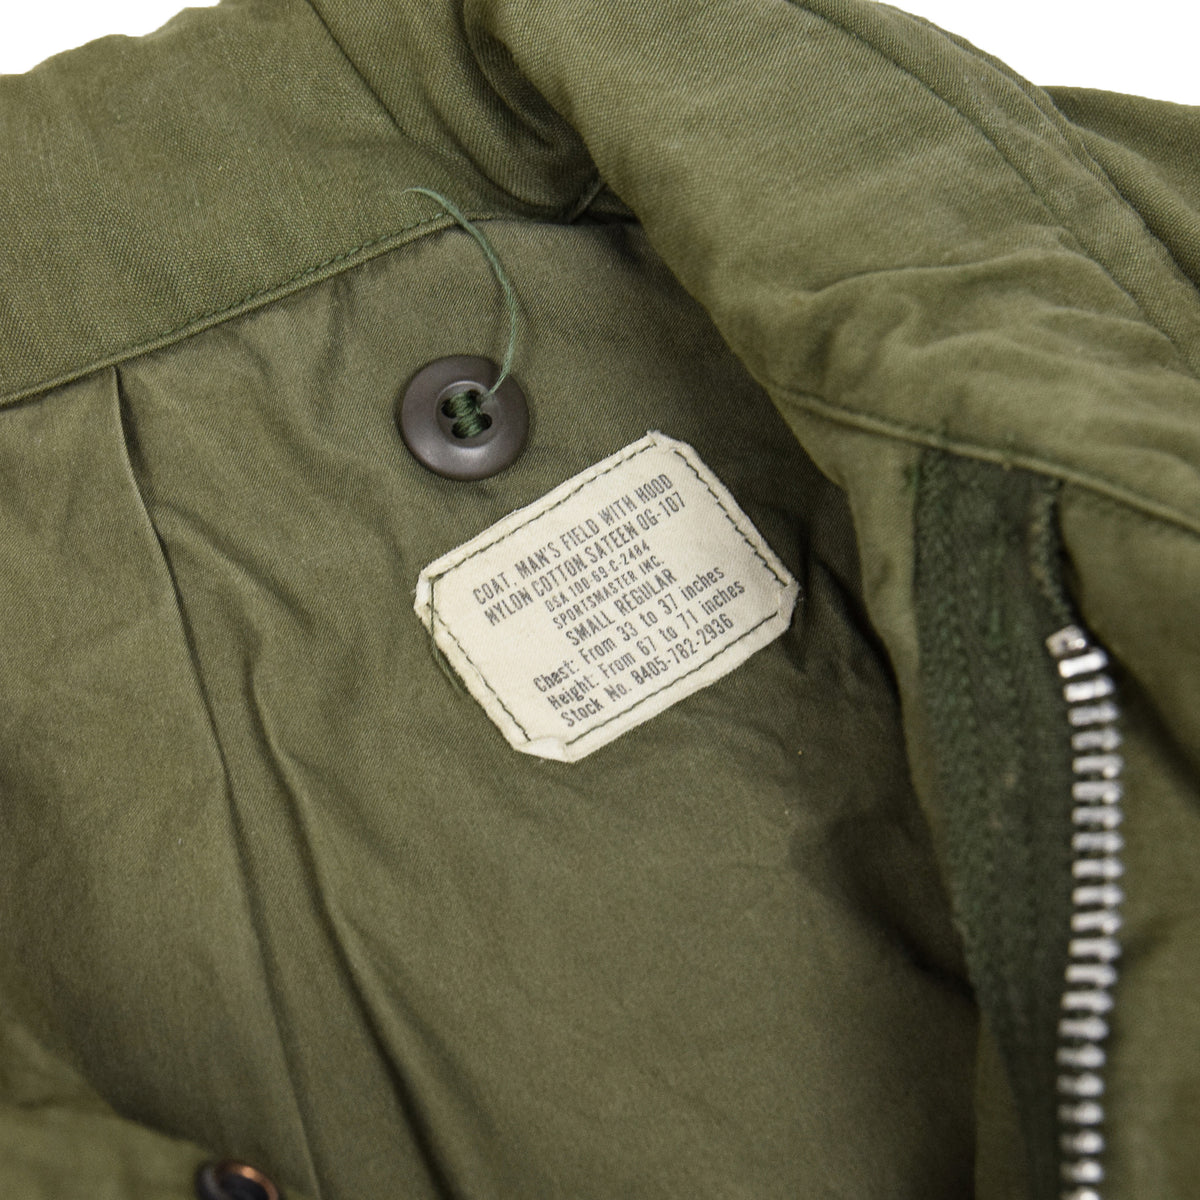 Vintage 60s Vietnam M-65 Man's Field Sateen 0G-107 Green US Army Coat S label